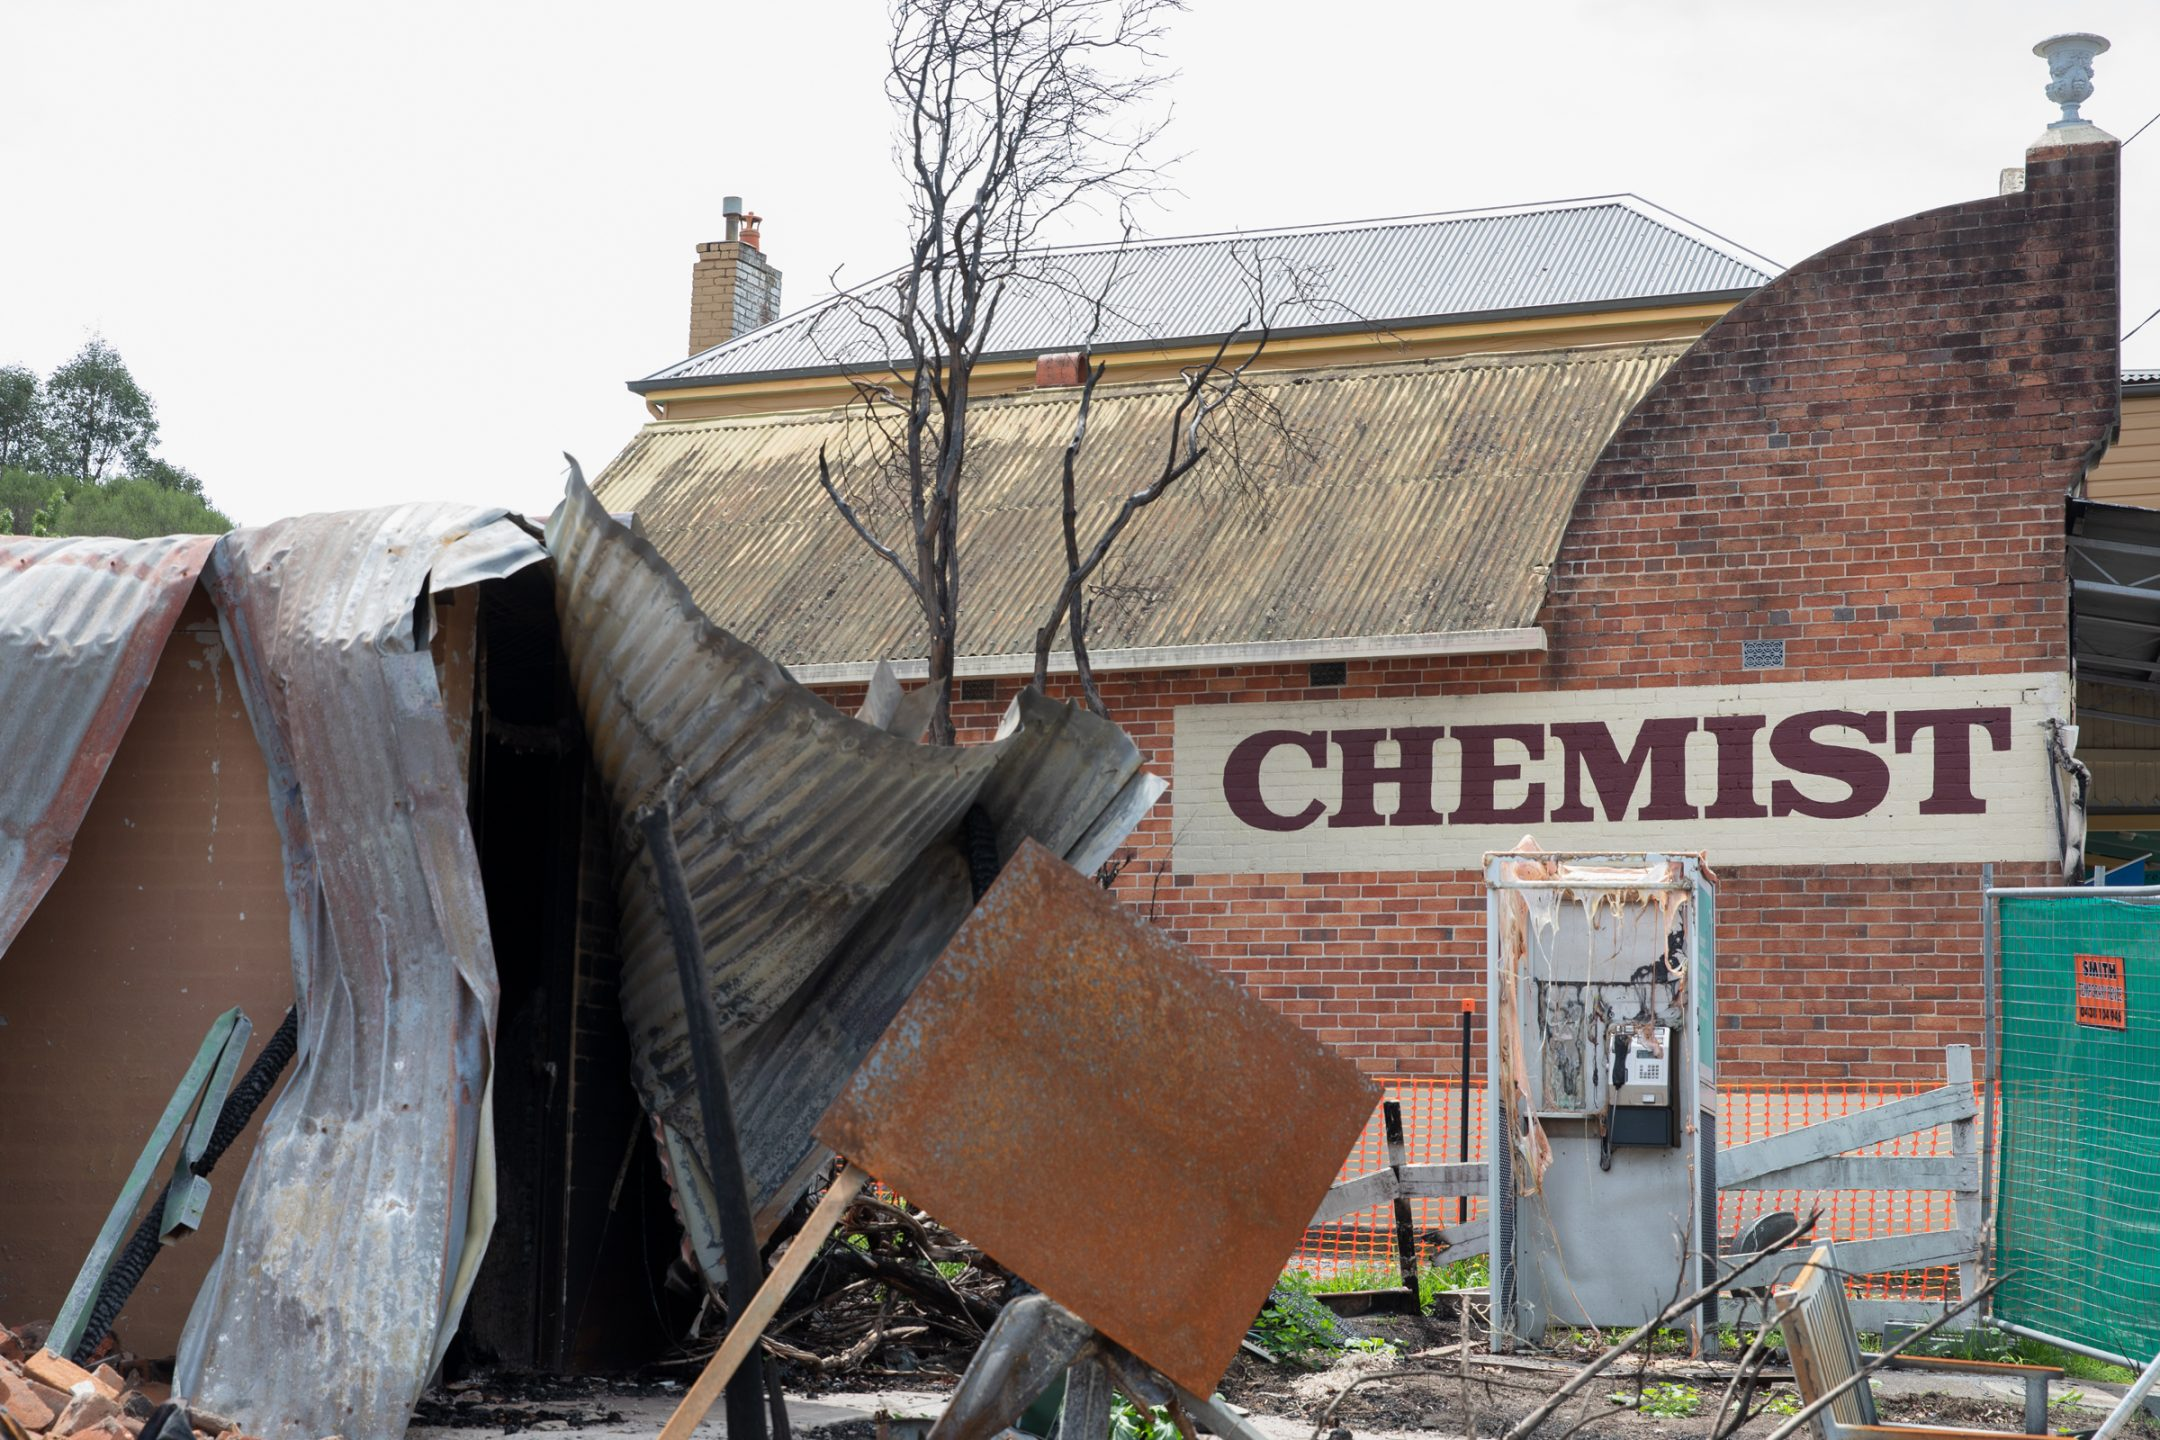 Destroyed building made with corrugated iron. Charred brick chemist building in the background